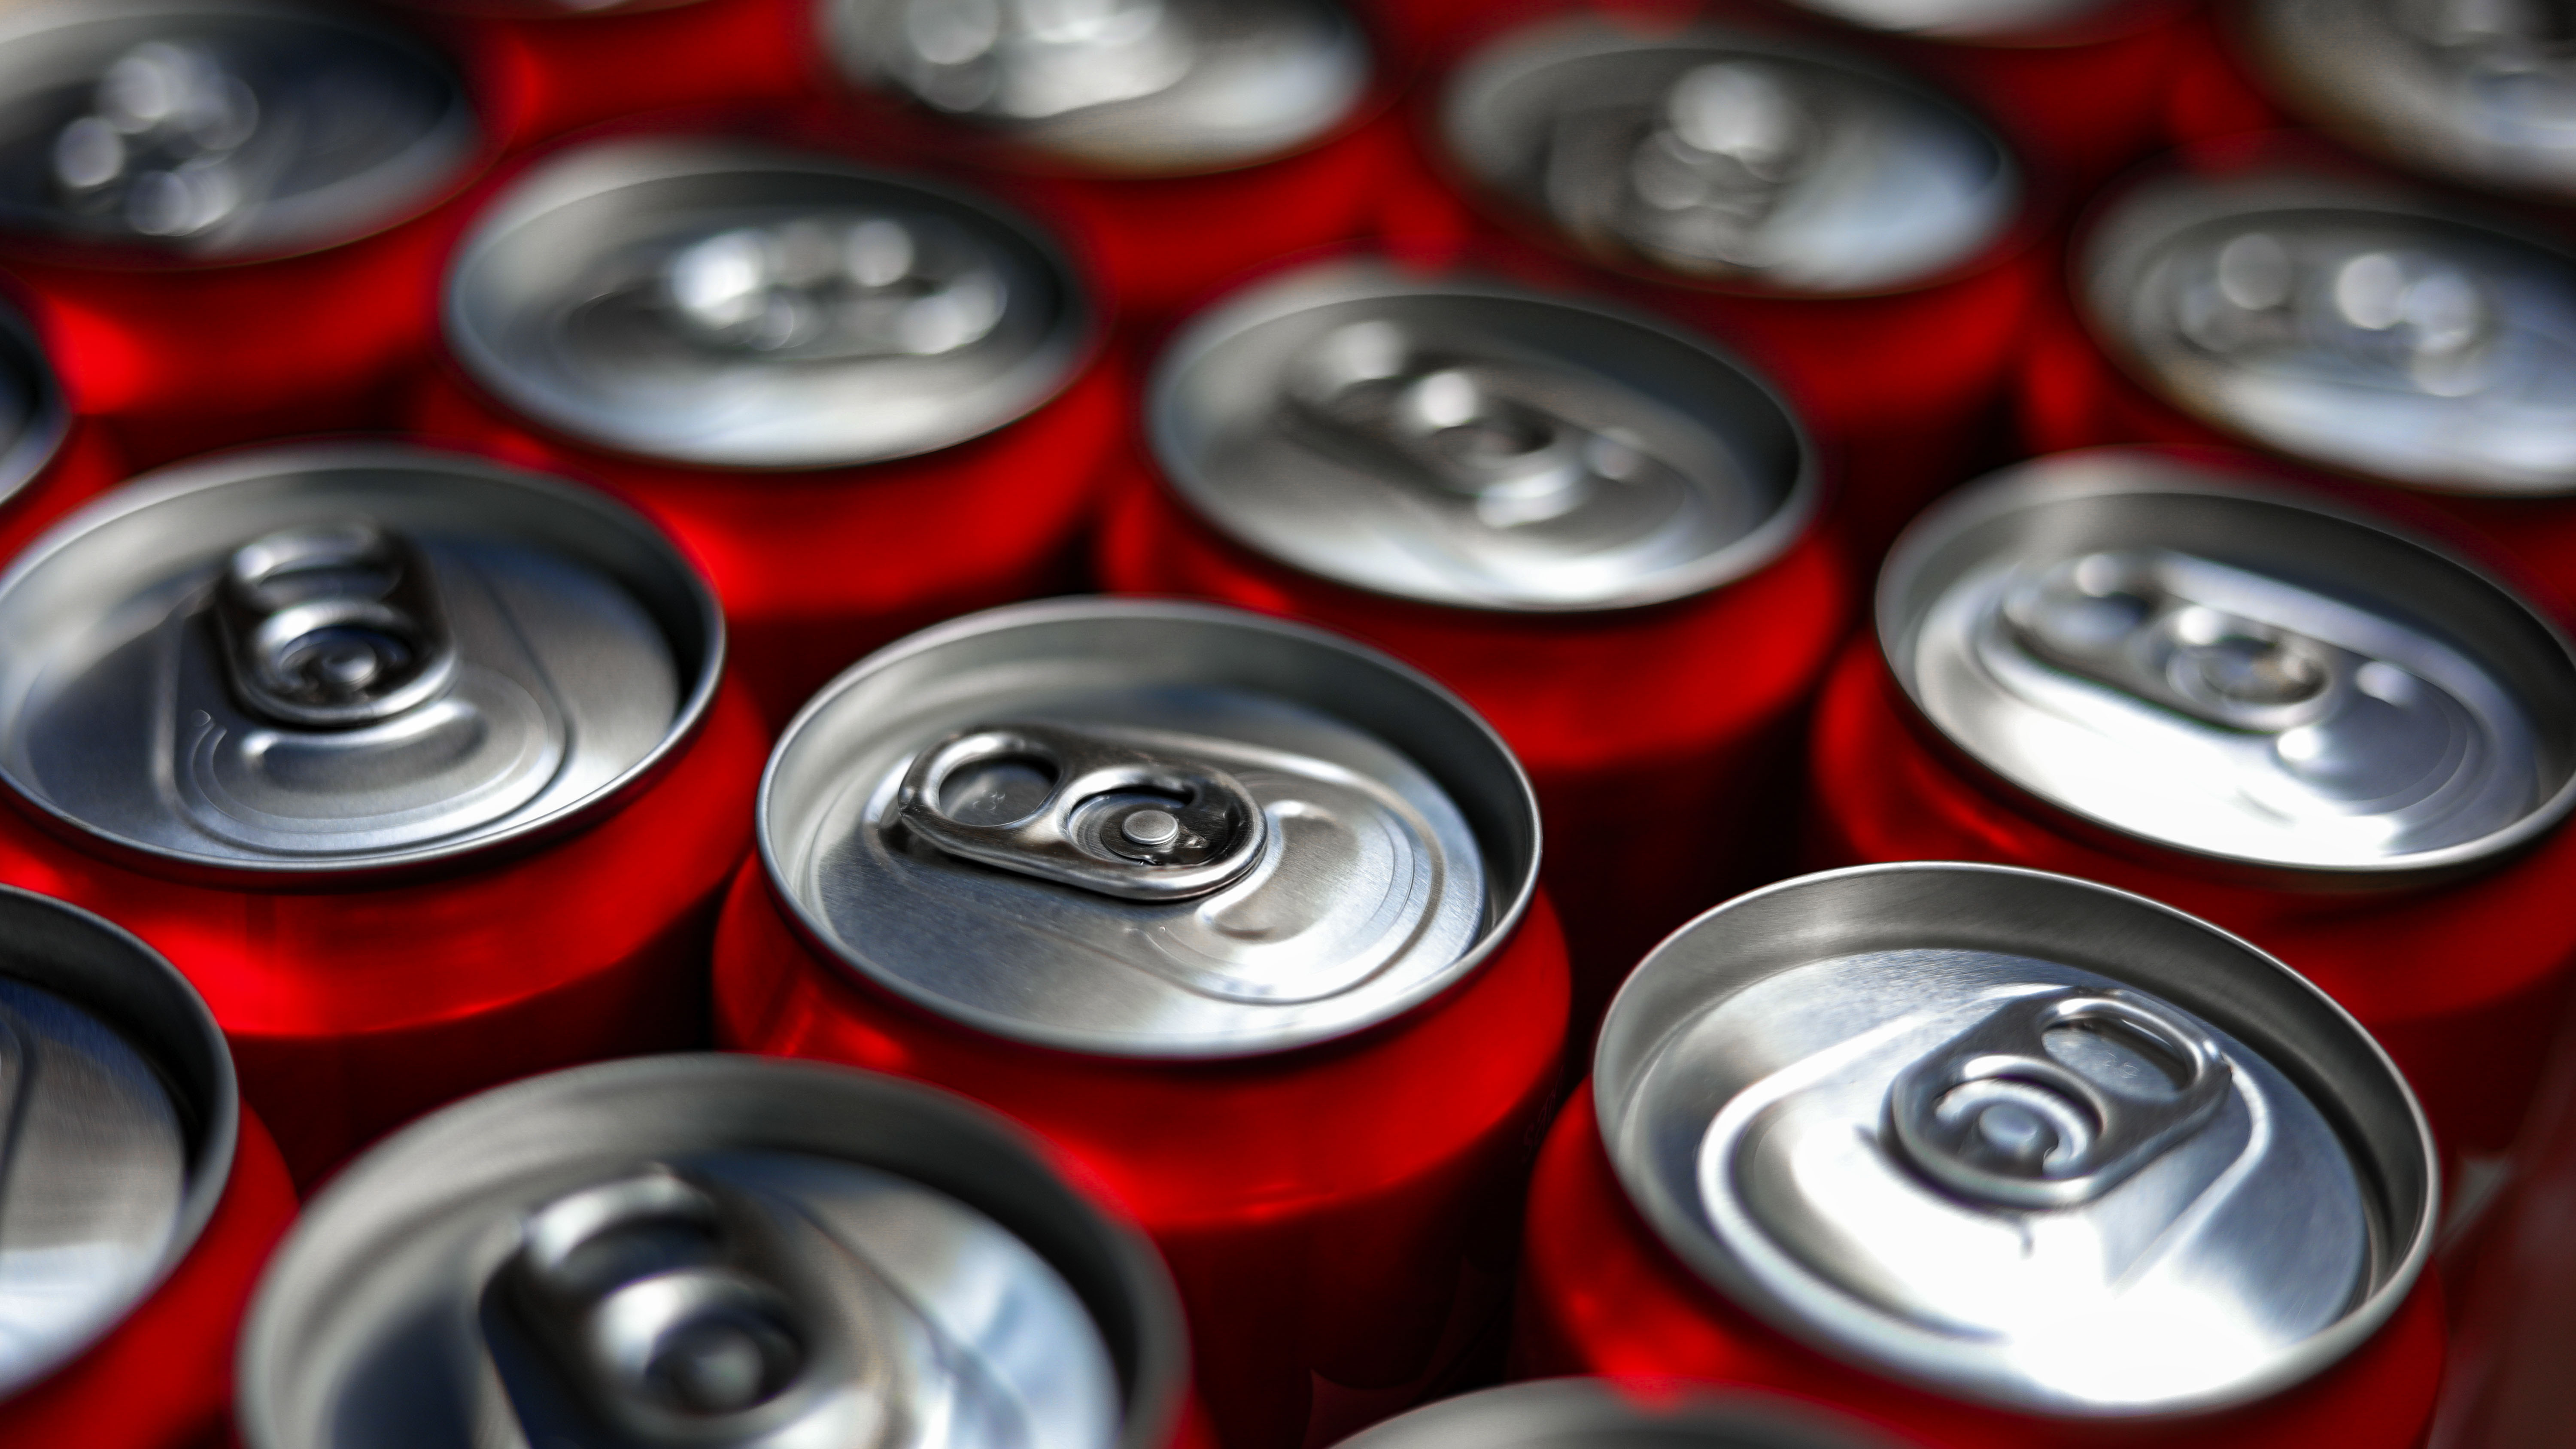 Soda flavors disappear from store shelves due to aluminum can shortage: report